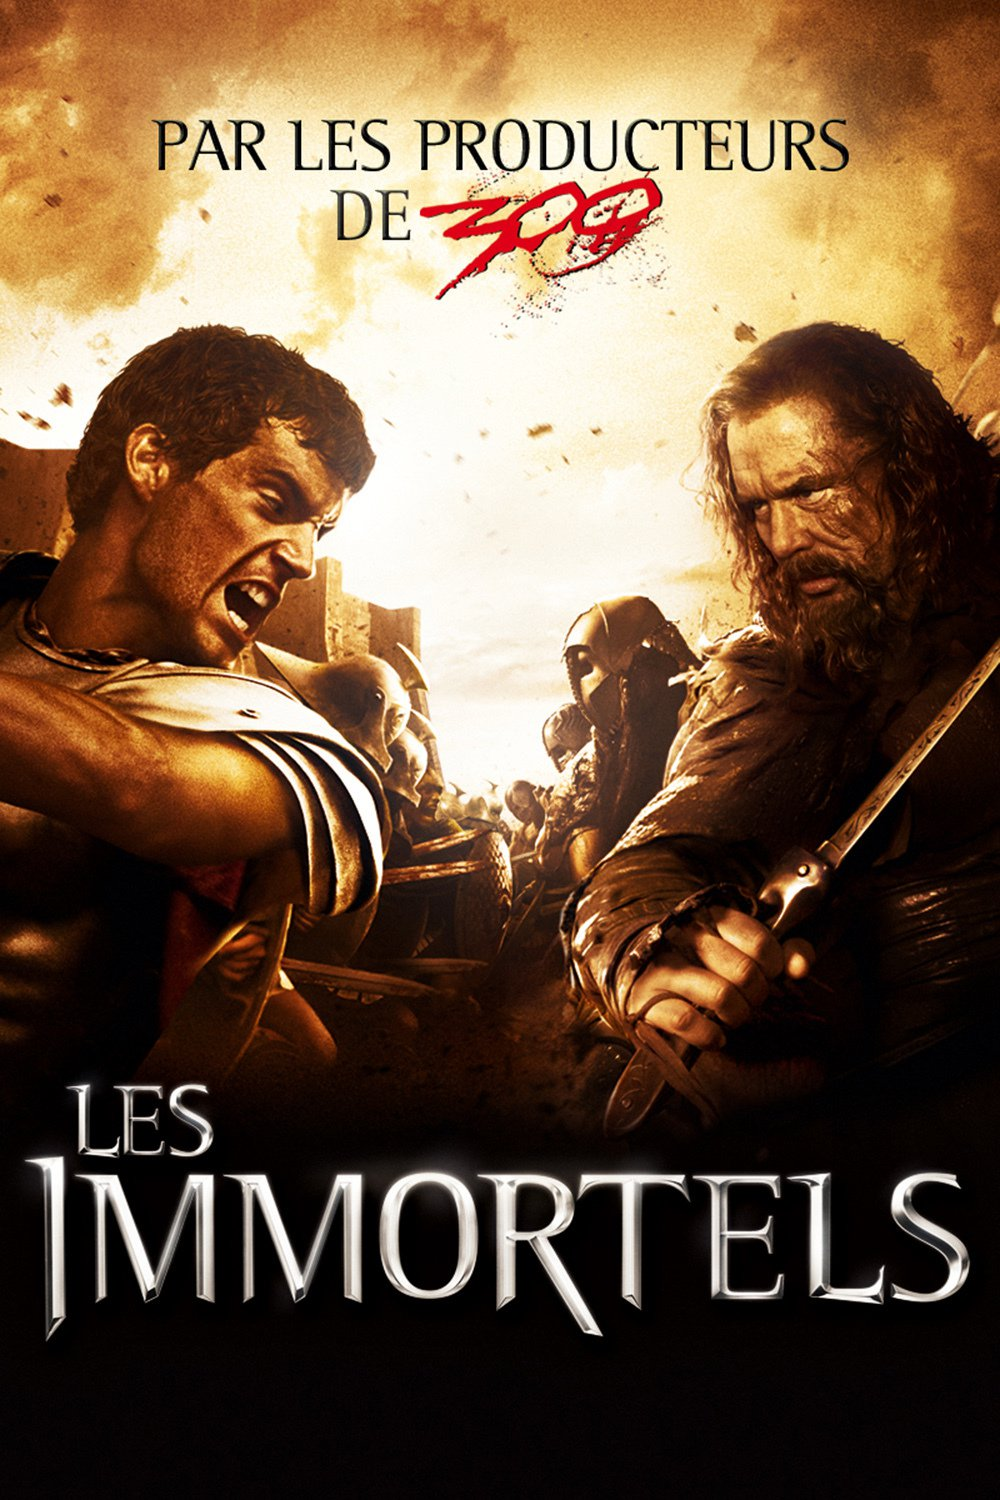 film les immortels 2011 french